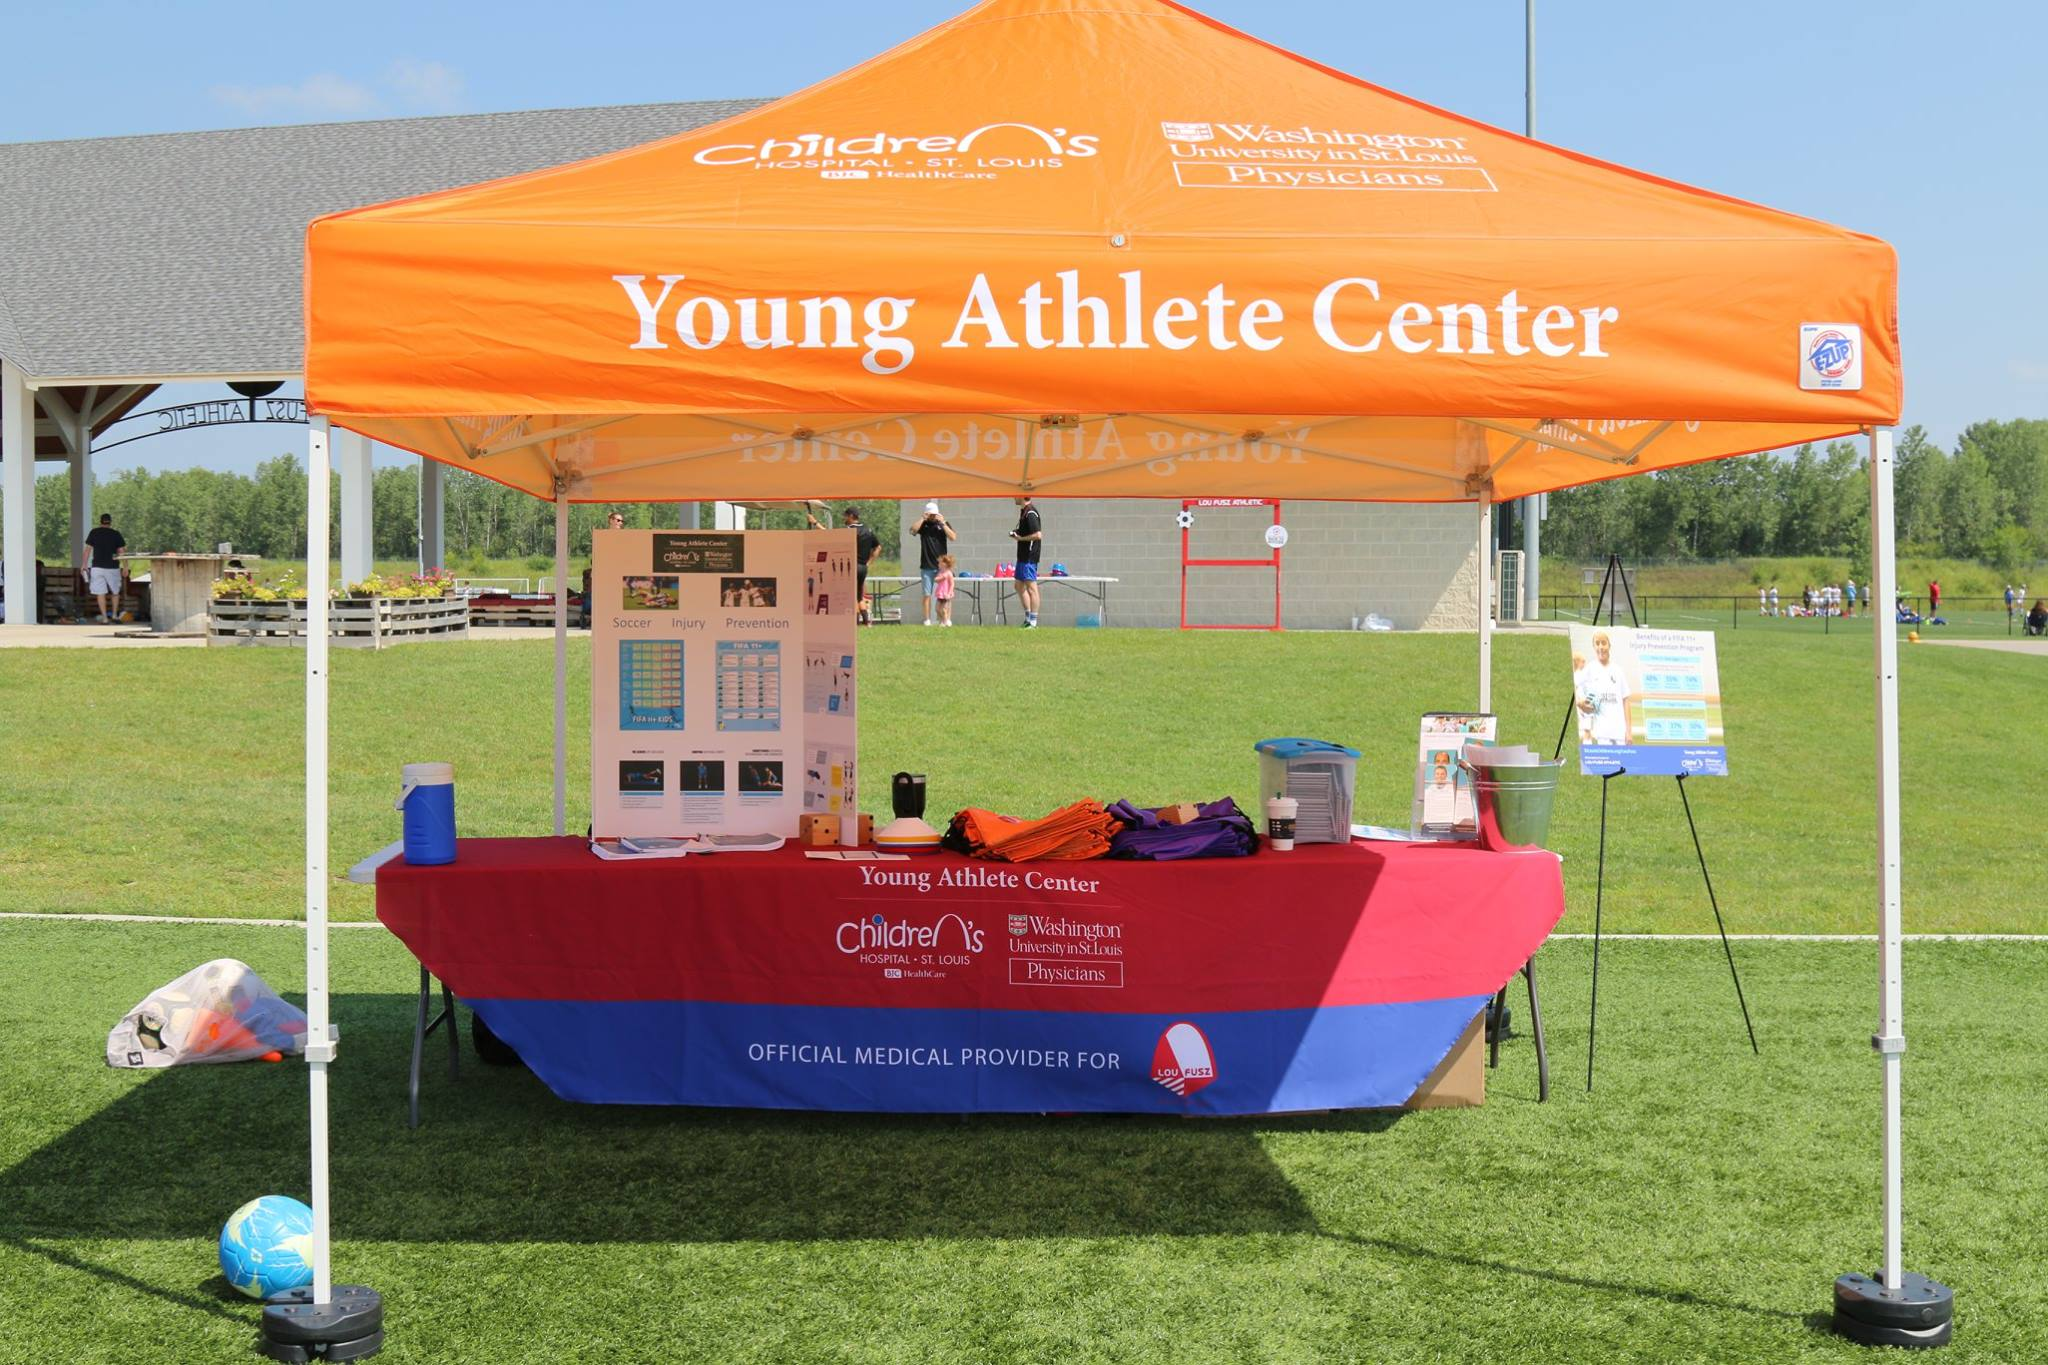 Young Athlete Center